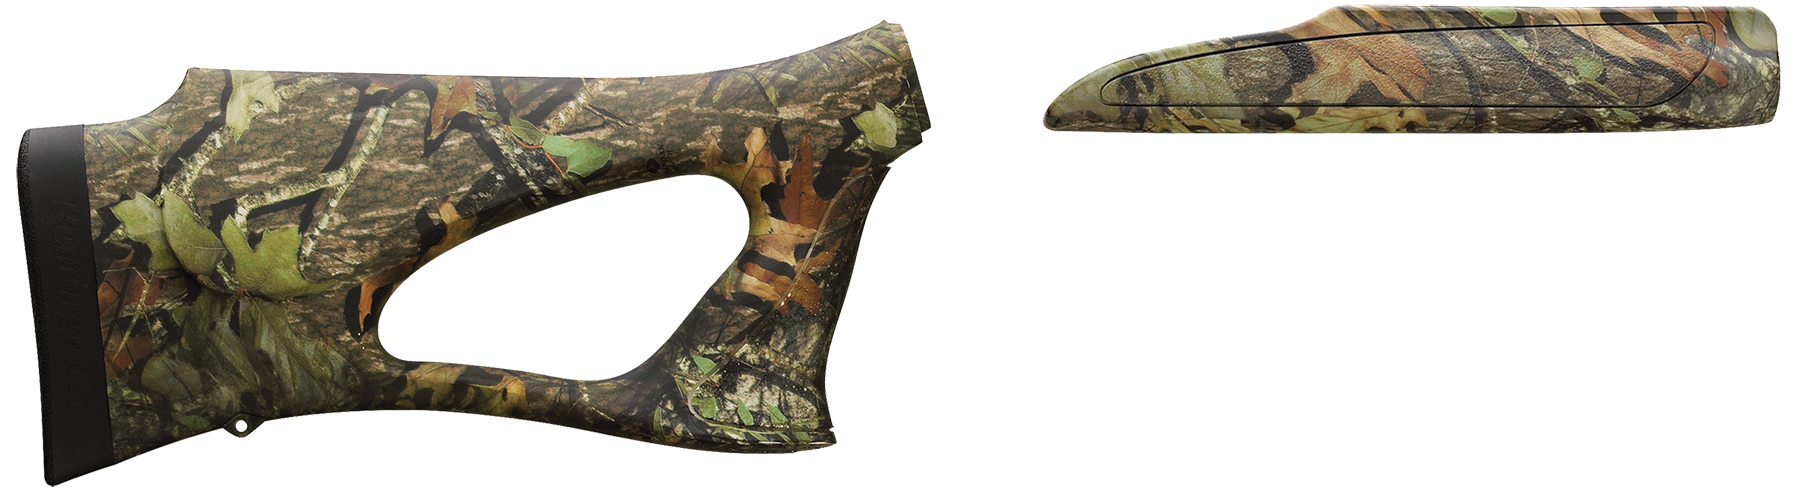 Remington  870 12 ga Thumbhole Shotgun Stock/Forend - Synthetic MOO